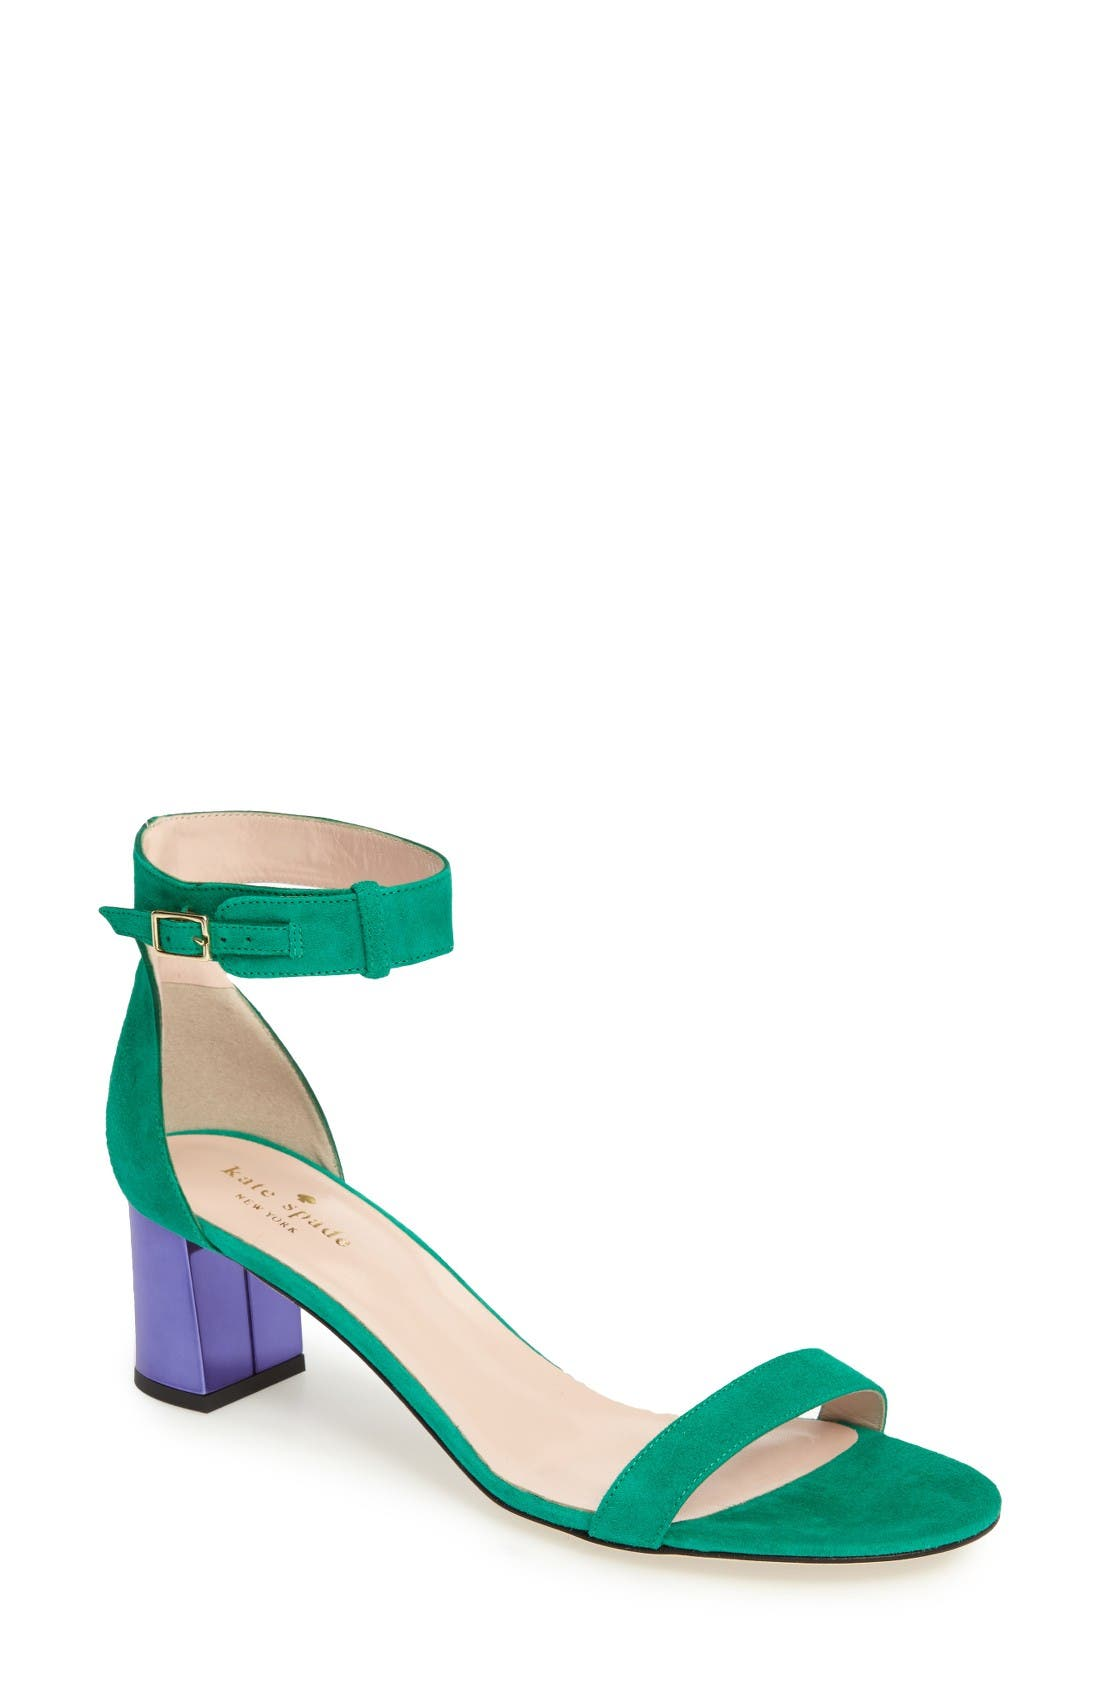 Main Image - kate spade new york menorca ankle strap sandal (Women)